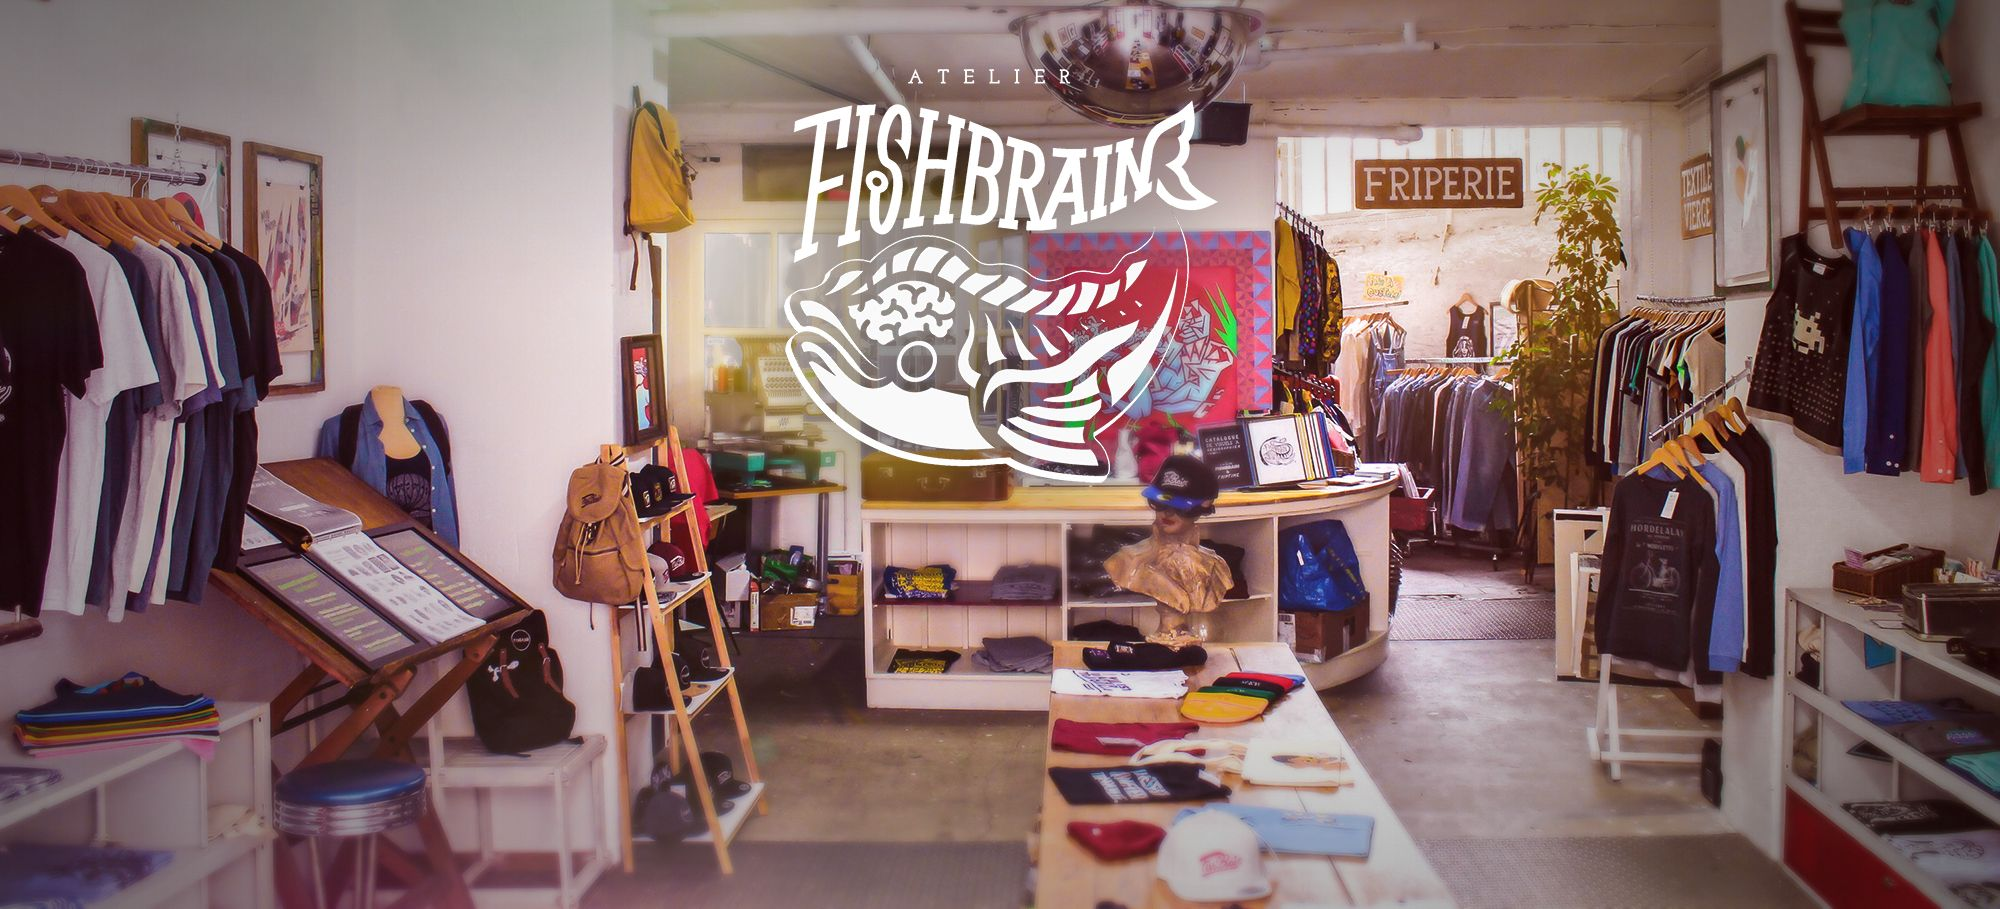 Atelier Fishbrain Impression Textile Serigraphie Broderie